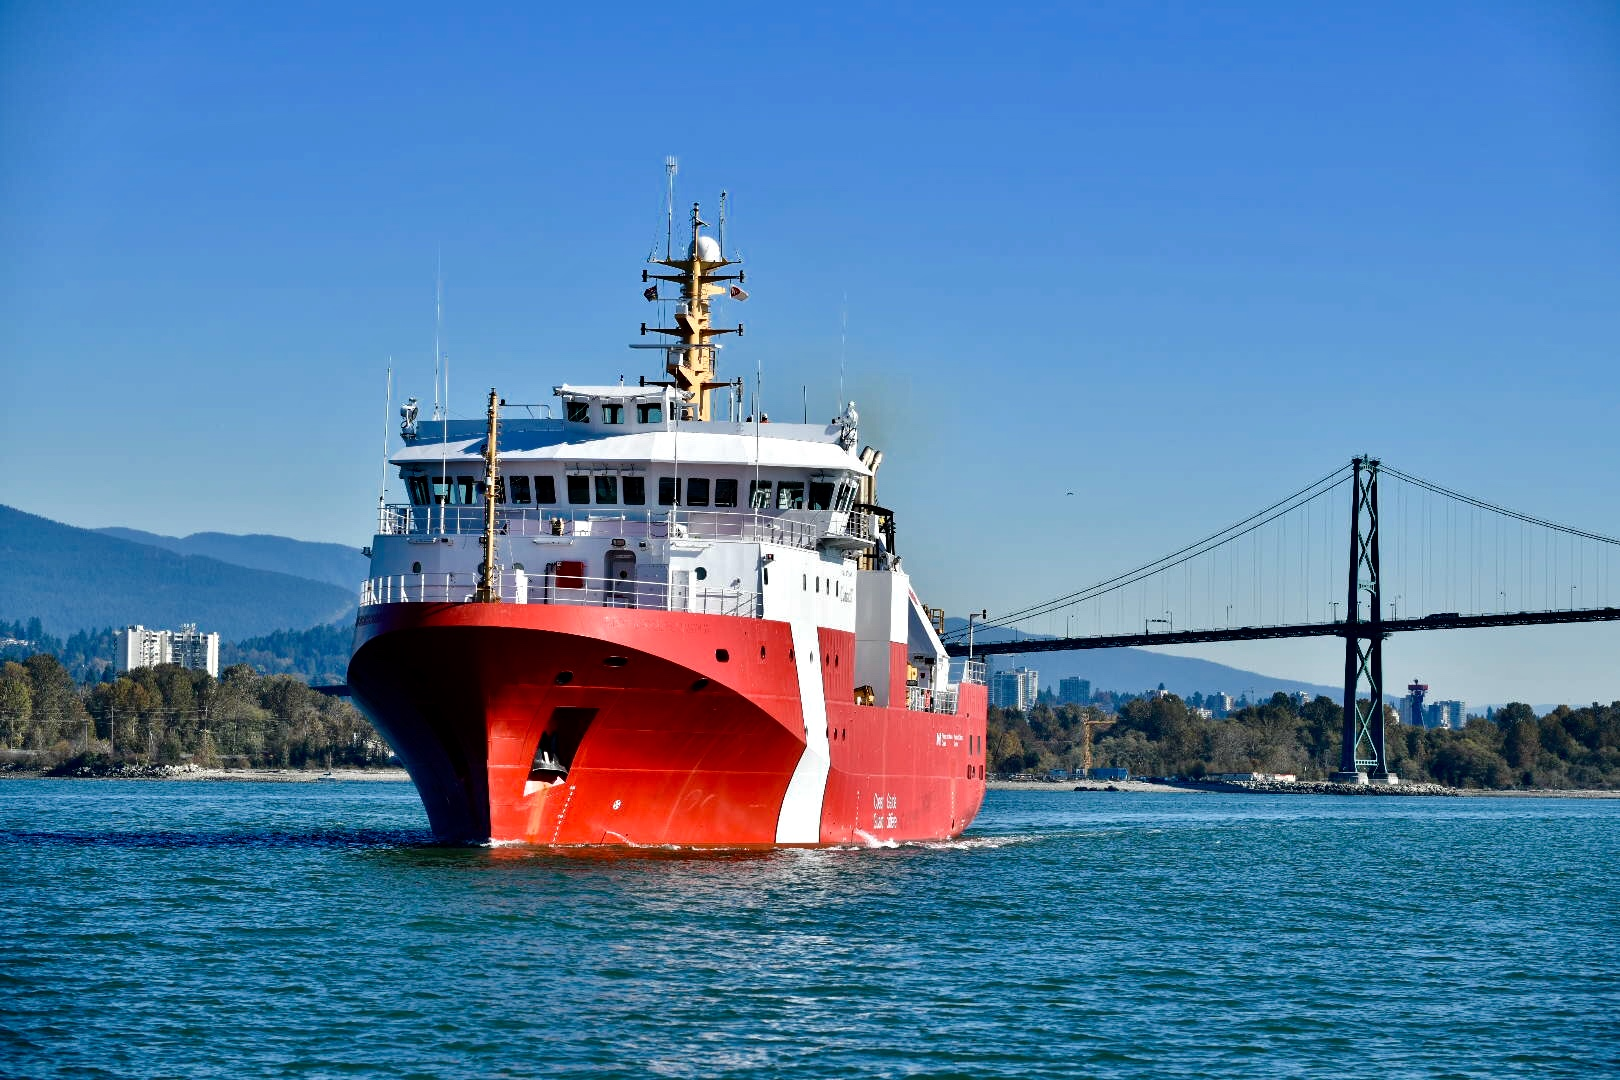 Seaspan Shipyards Momentum Continues as Sea Trials Begin Today for the Second Offshore Fisheries Science Vessel for the Canadian Coast Guard